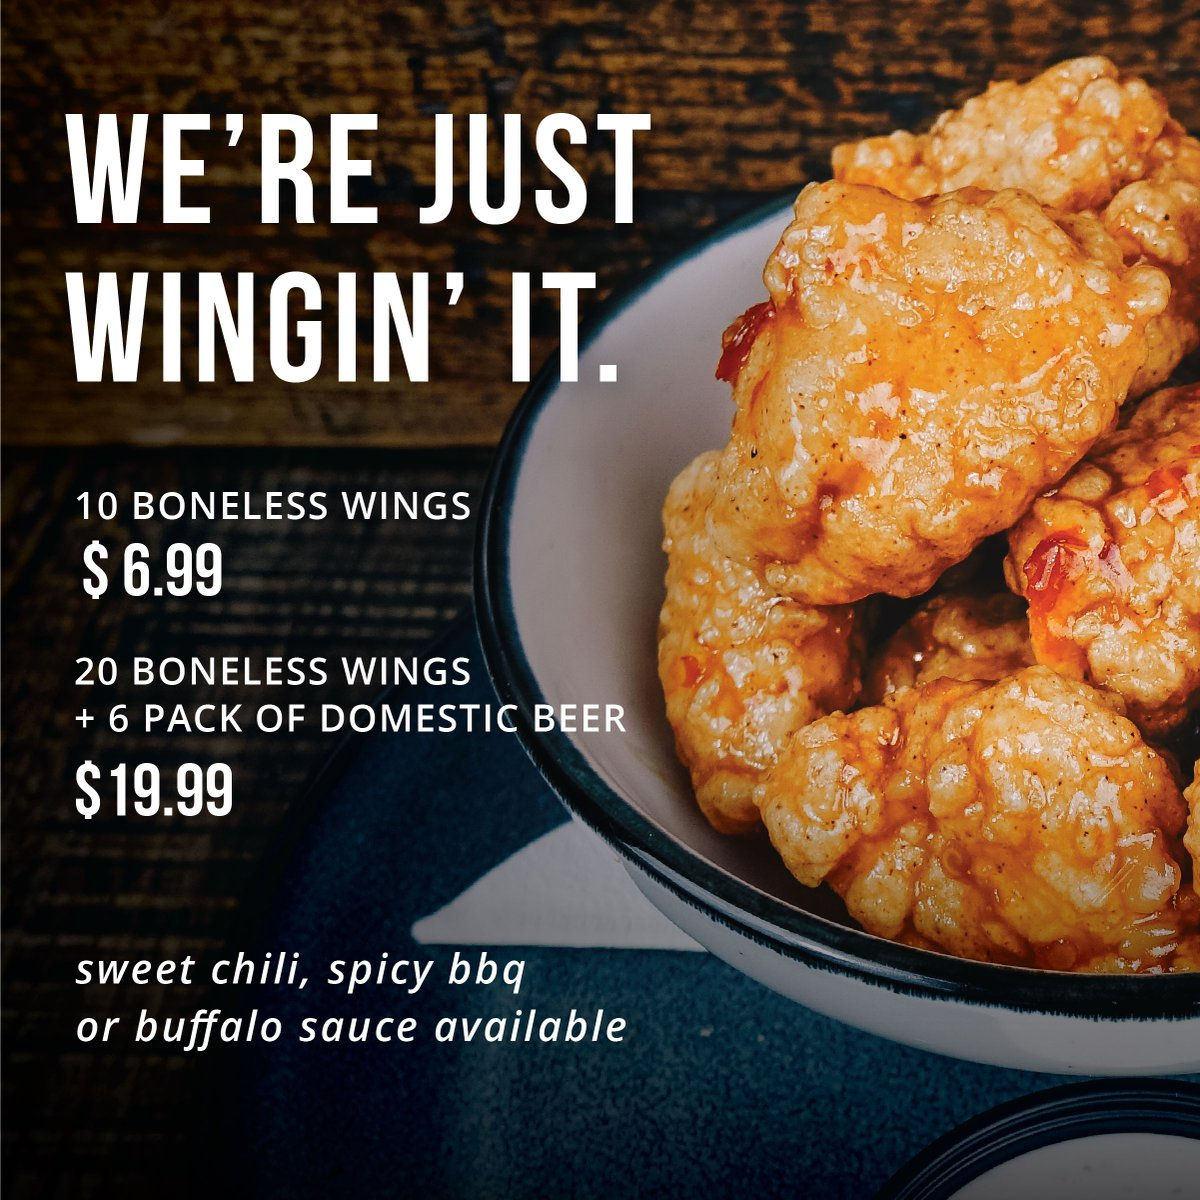 Walk On S Sports Bistreaux On Twitter More Wings Deals More To Love When You Don T Feel Like Cooking Come See Us Curbside Pickup Only Https T Co Qvamaxkp6p Https T Co 327epiz5zm